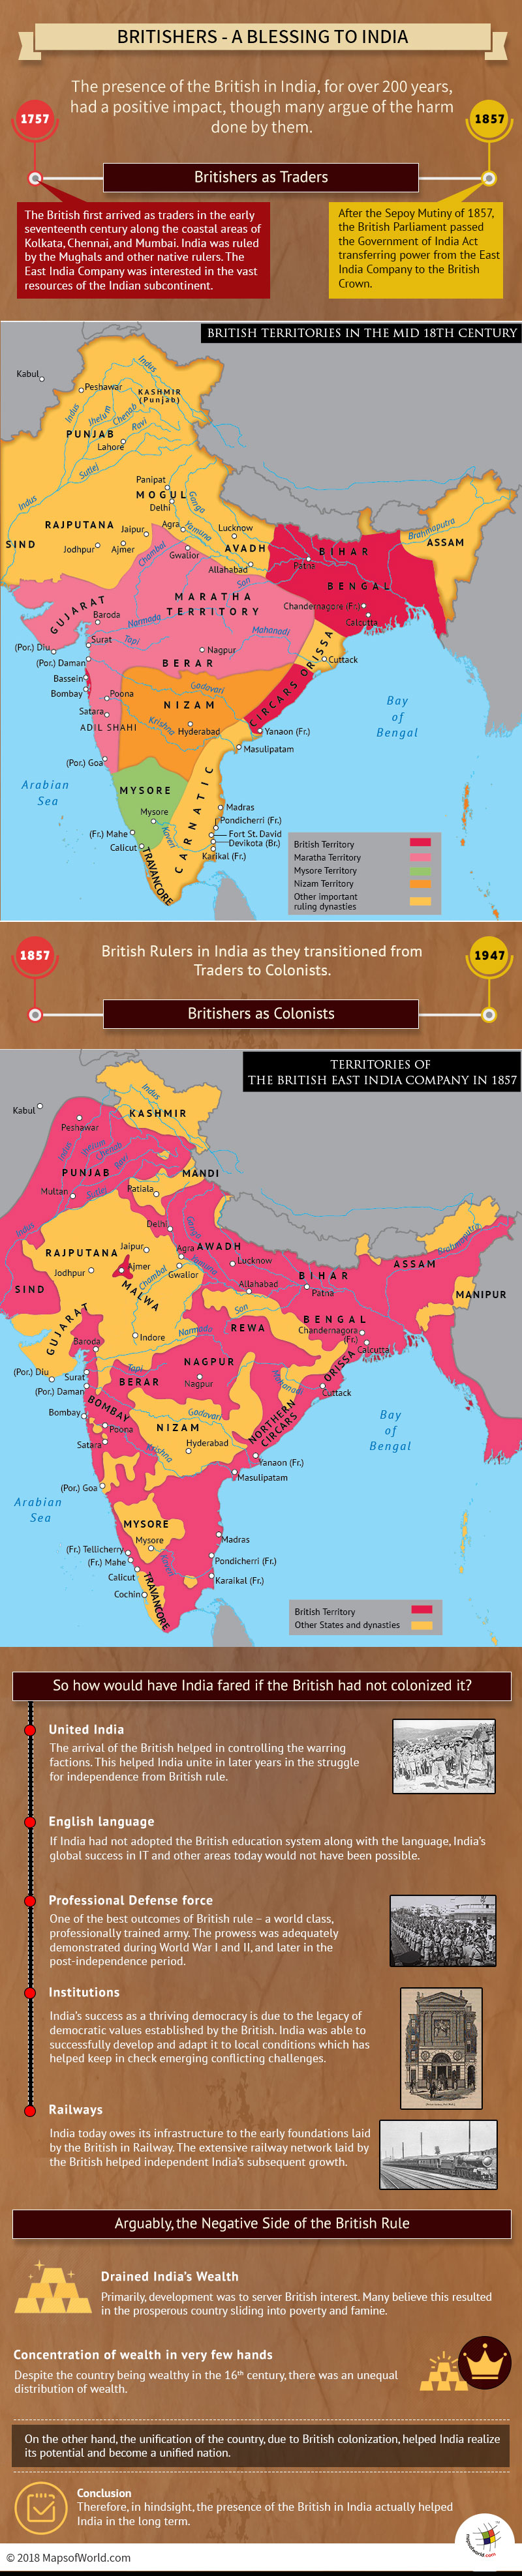 Infographic on British Rule in India